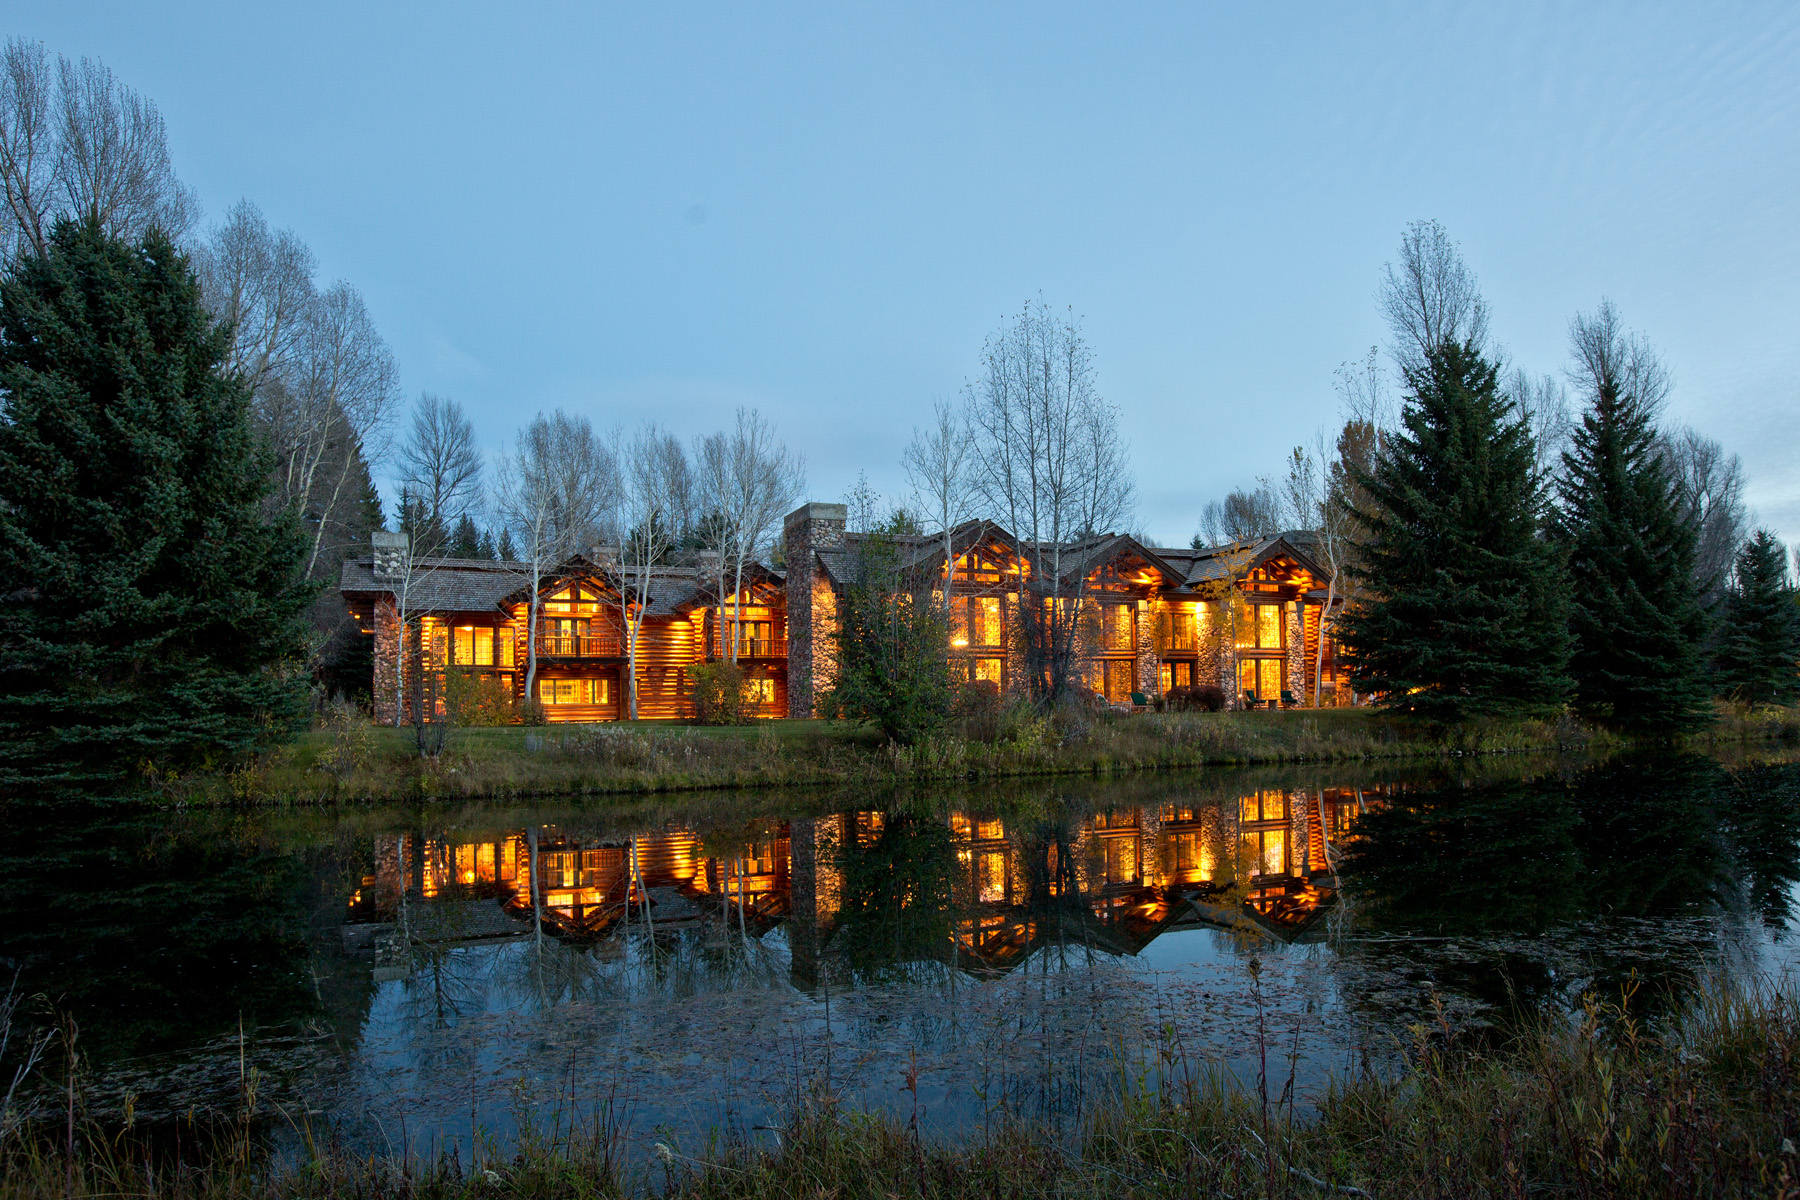 Single Family Home for Sale at 70 Acre Estate on the Snake River 1100 Woodside Drive Jackson, Wyoming, 83001 Jackson Hole, United States